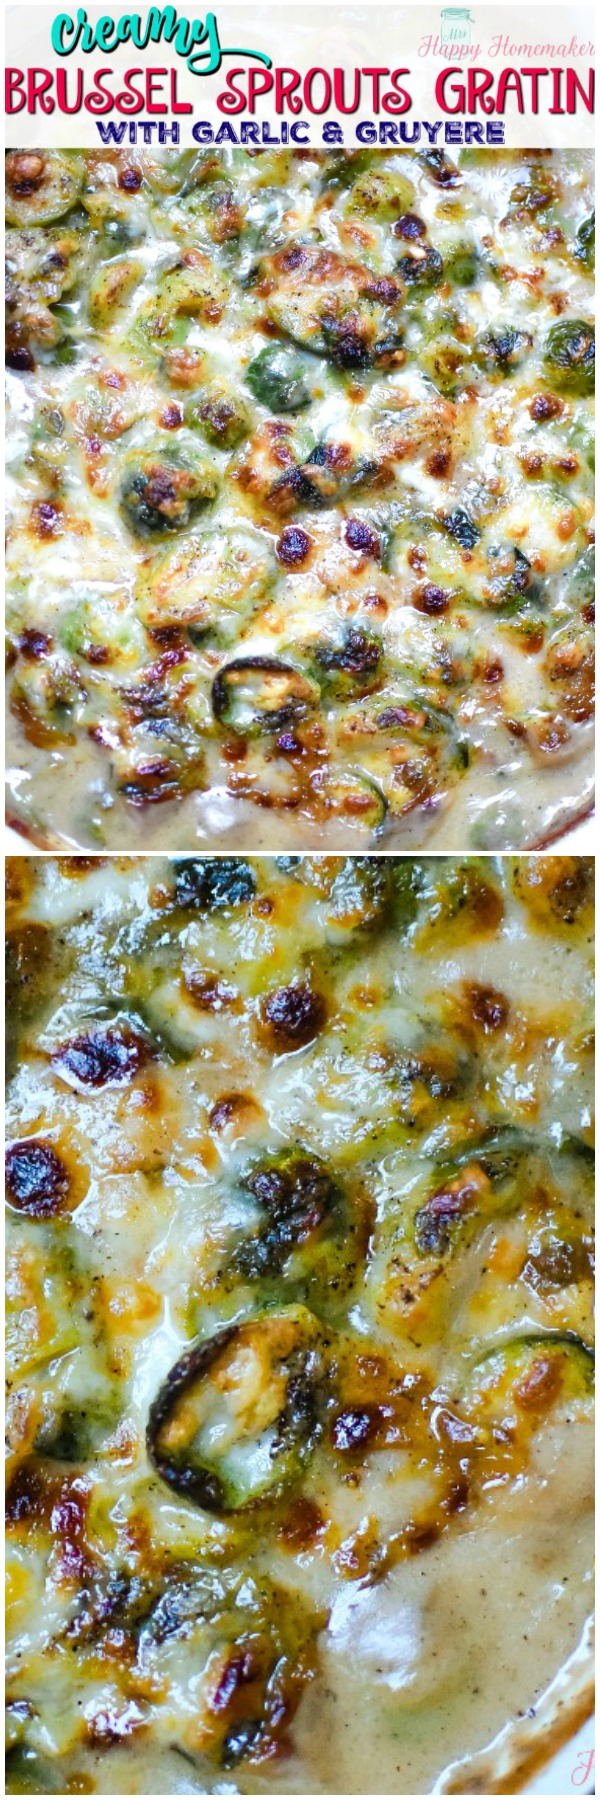 Brussels sprouts Gratin with creamy garlic gruyere cheese sauce